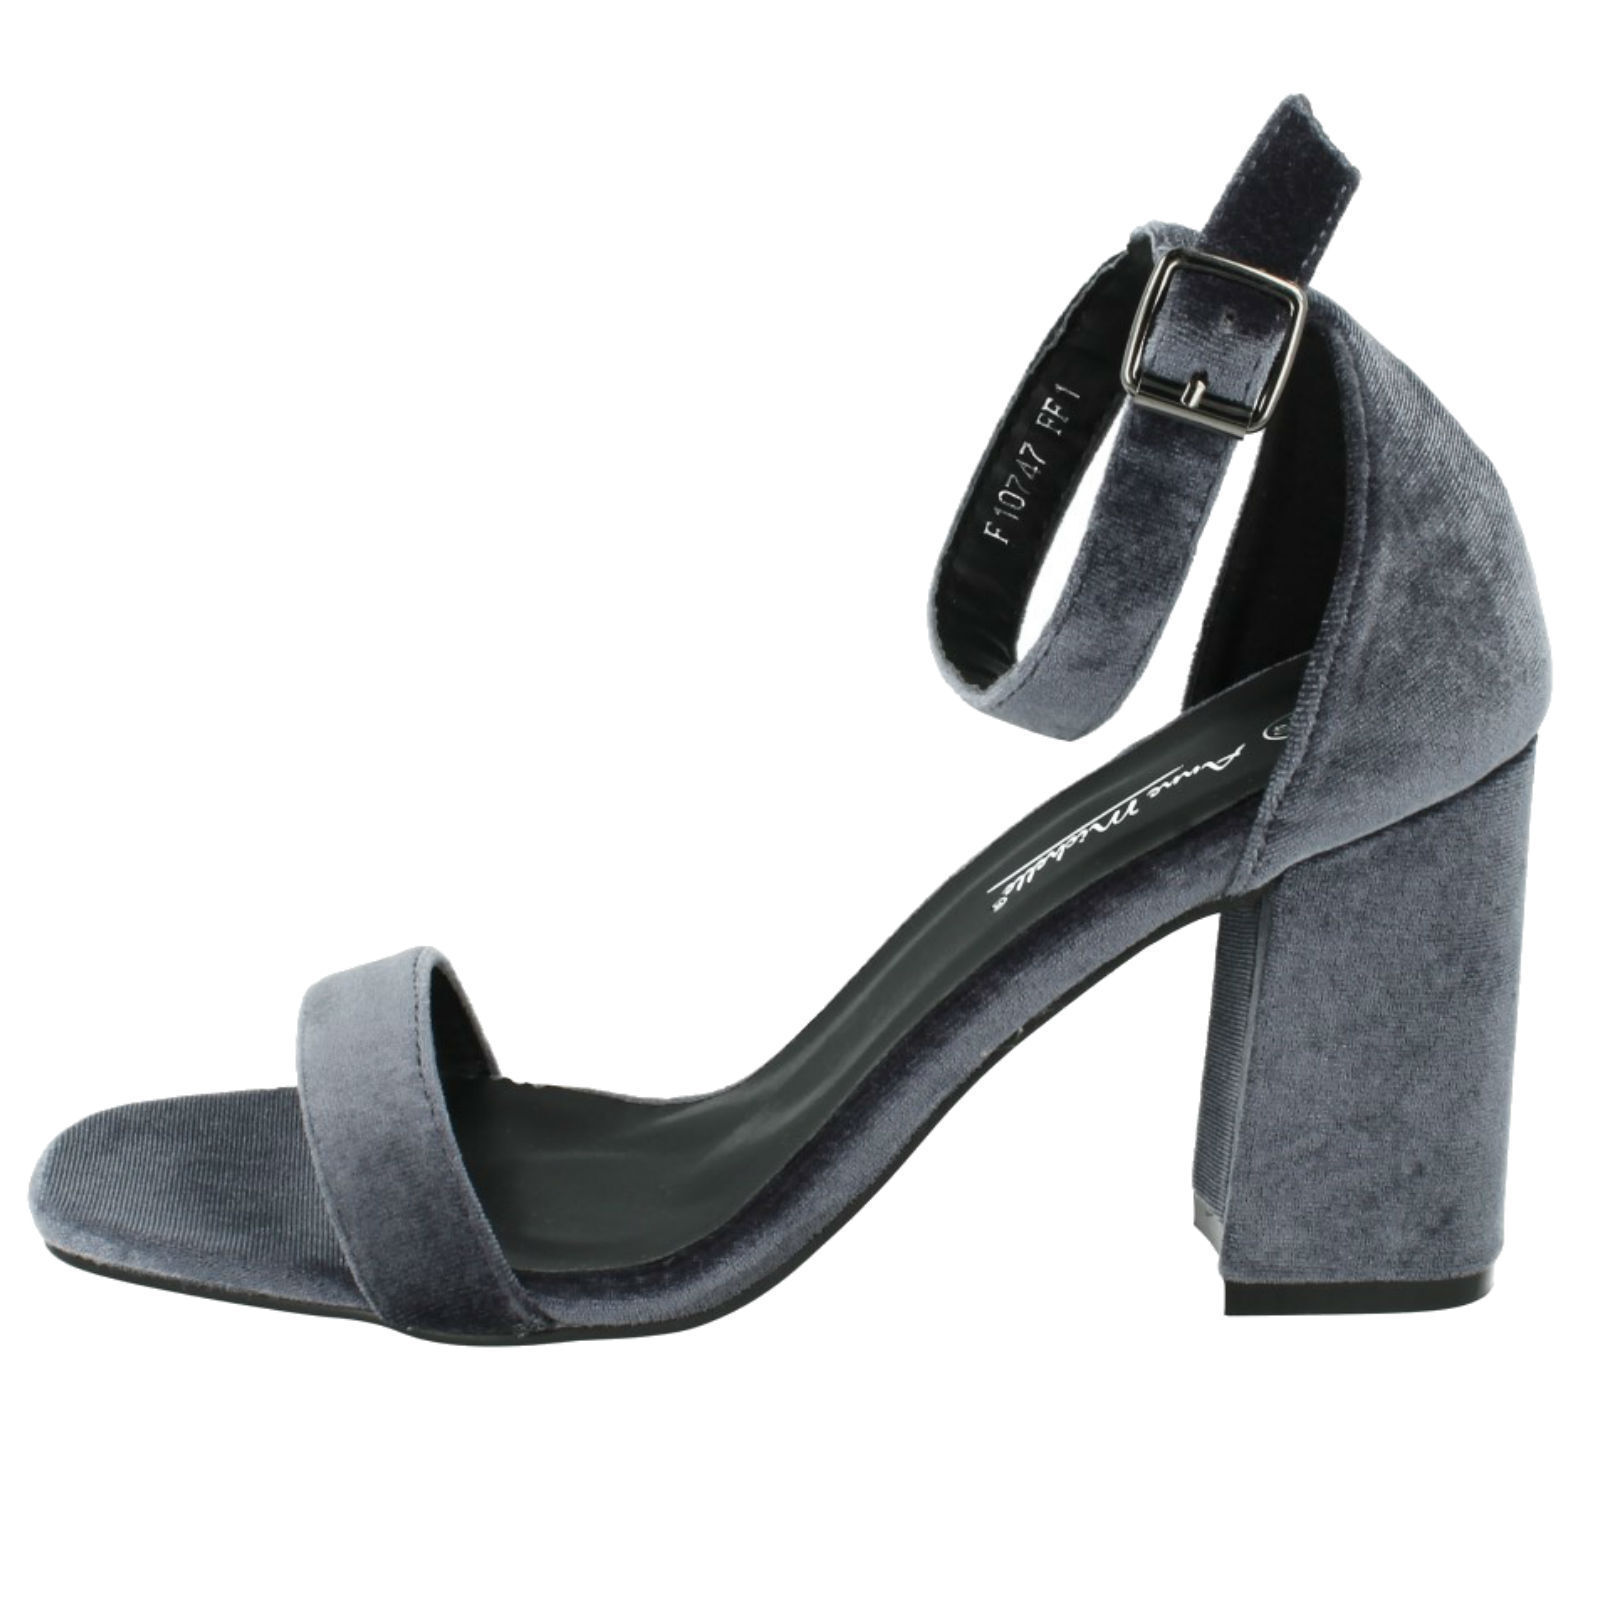 Anne Grey Michelle F10747 Ladies Grey Anne Soft Textile Shoes Block Heels to 8 (29B) 9c3d21